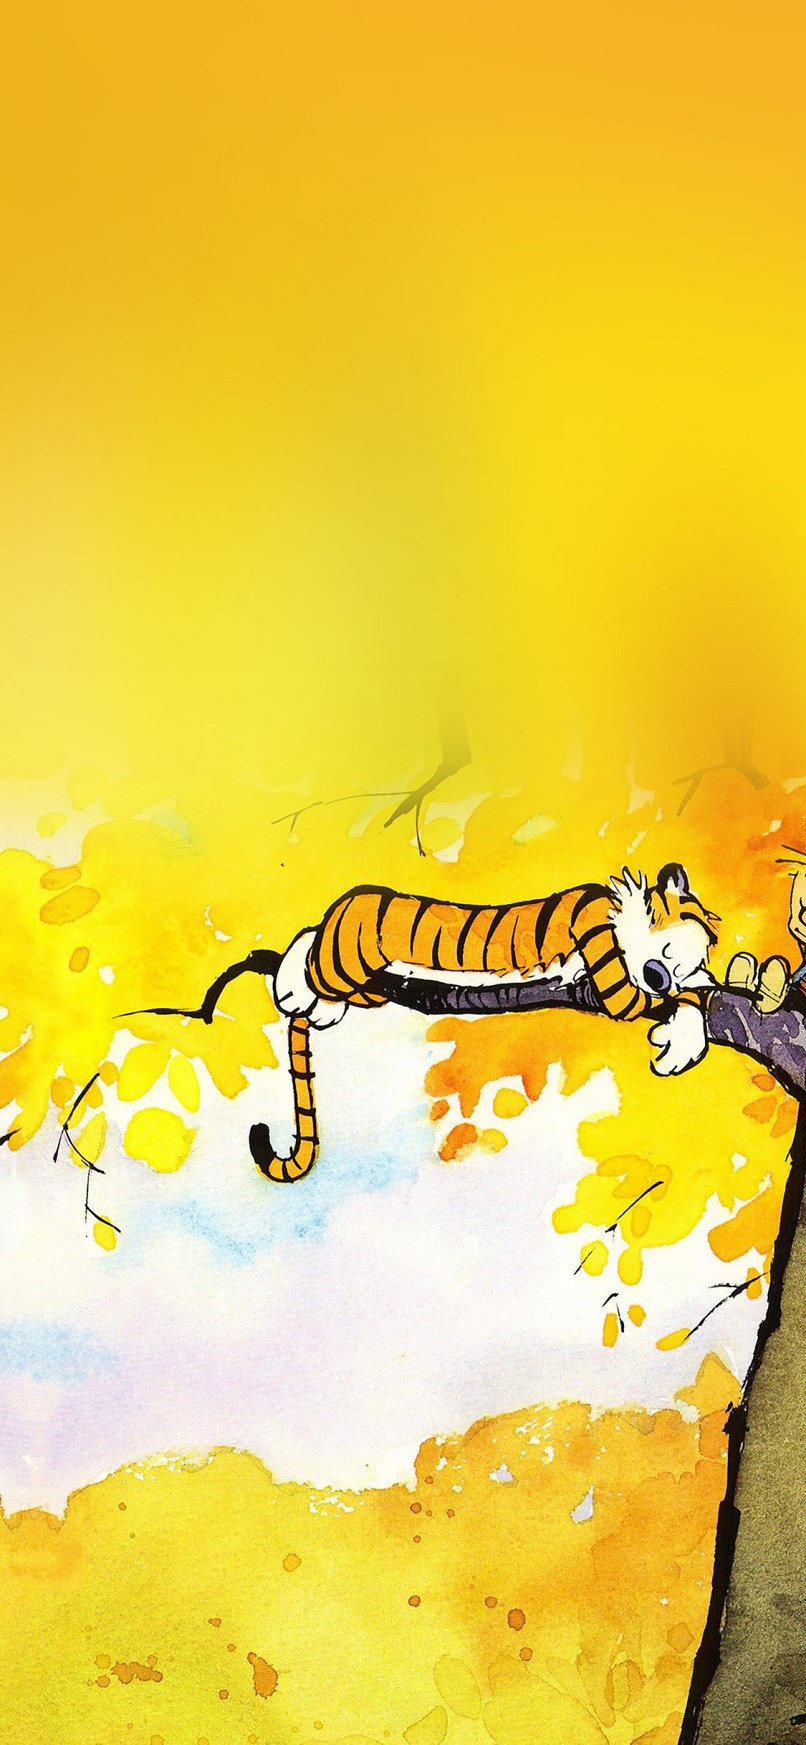 Calvin And Hobbes Wallpapers 1280×1024 | Babangrichie.org